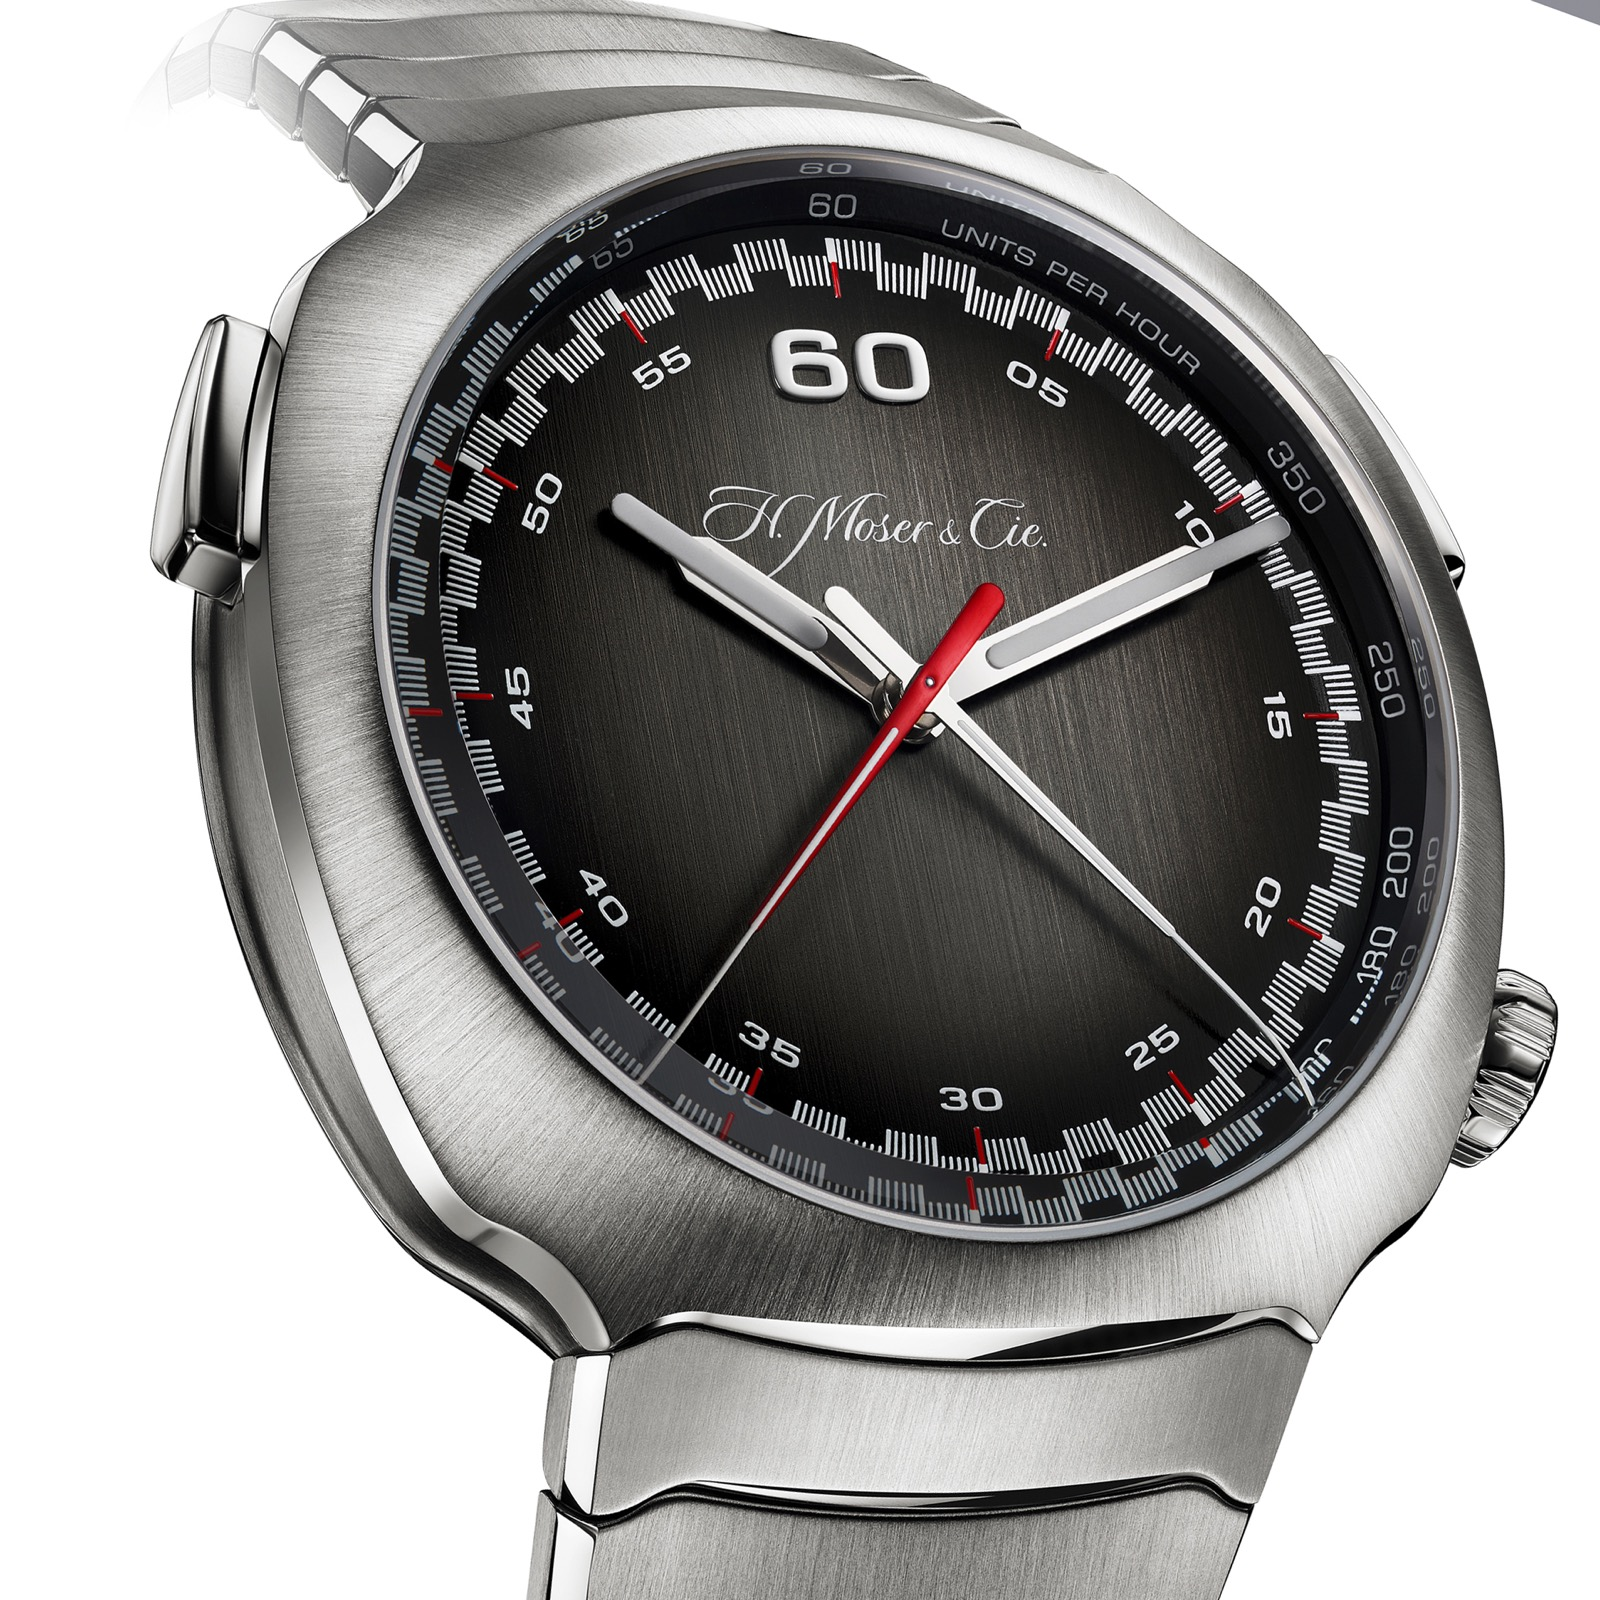 H. Moser & Cie - Streamliner Flyback Chronograph Automatic GPHG